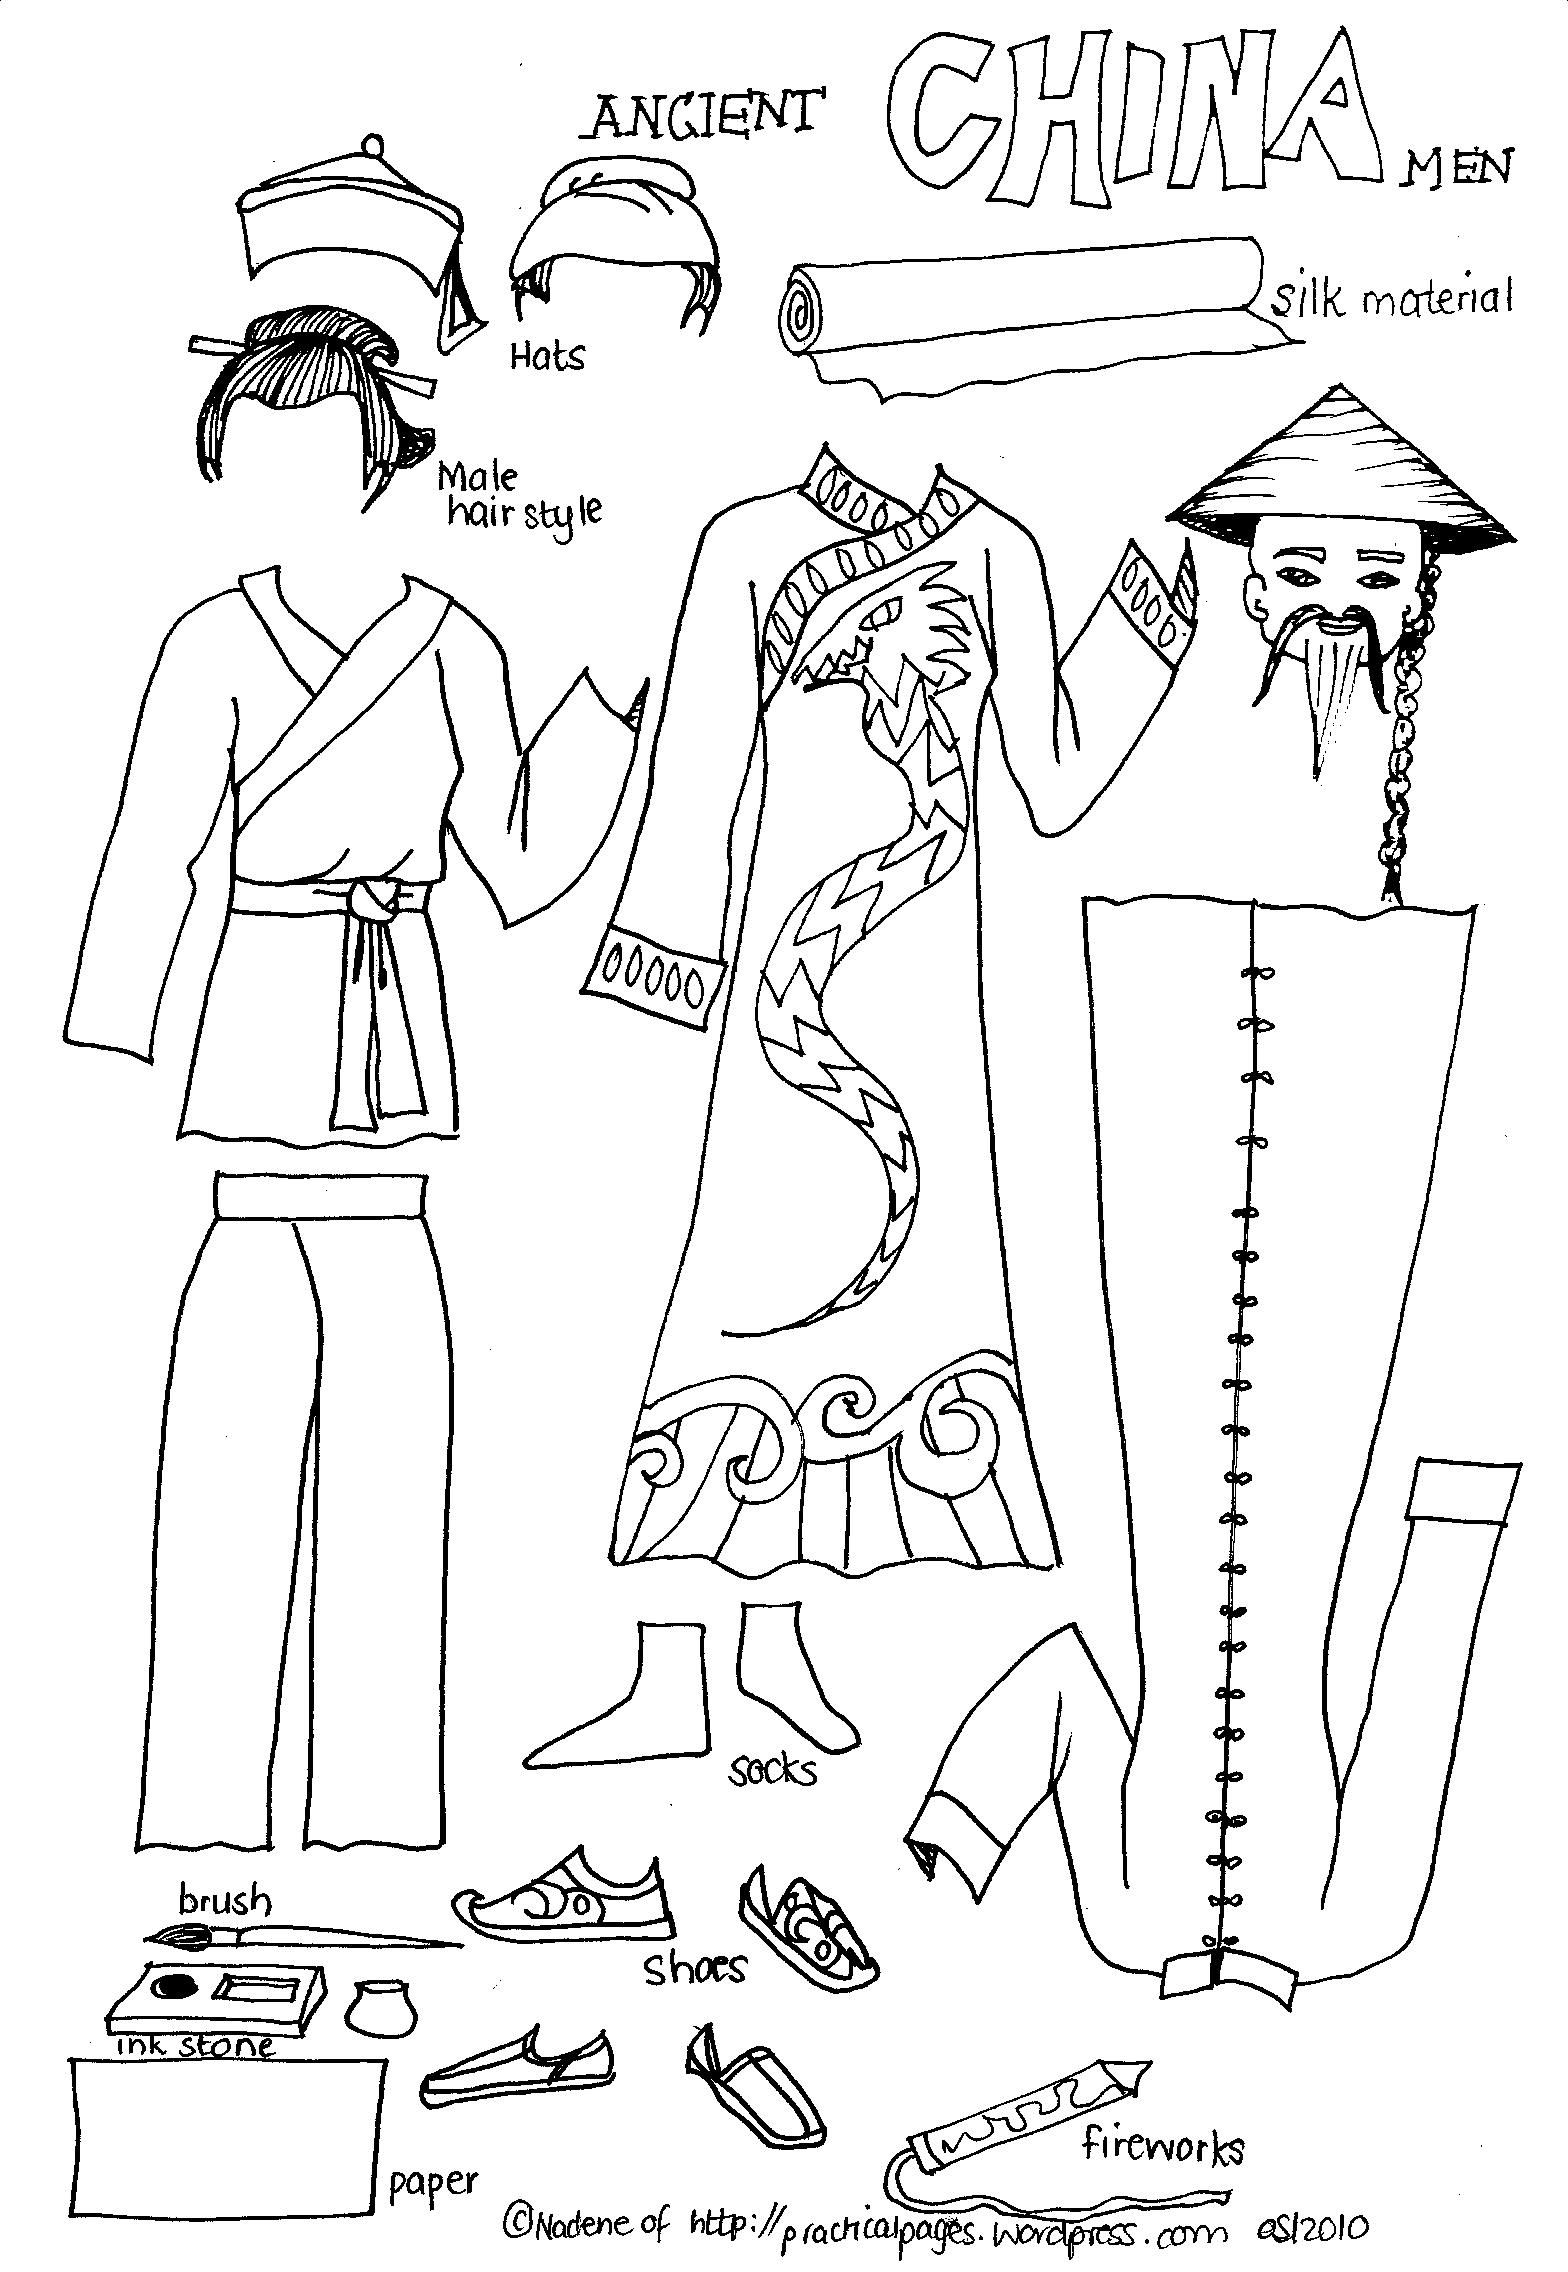 Worksheets Ancient China Worksheets 1000 images about ancient china on pinterest the silk great wall of and geography